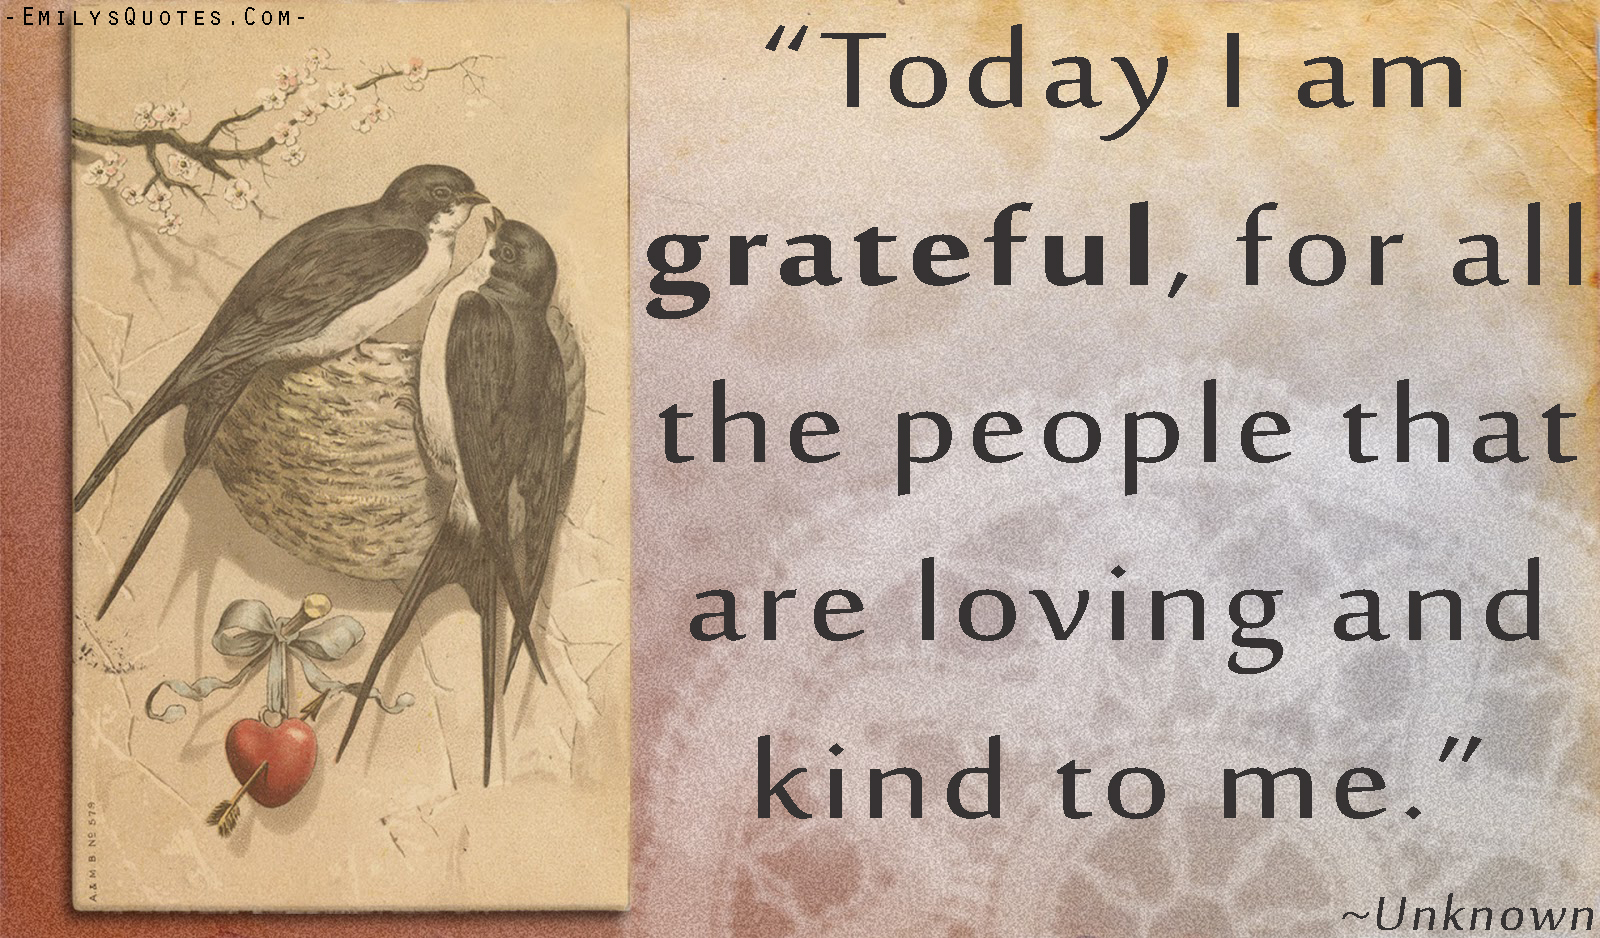 EmilysQuotes.Com - unknown, thankful, grateful, positive, love, kindness, people, relationship